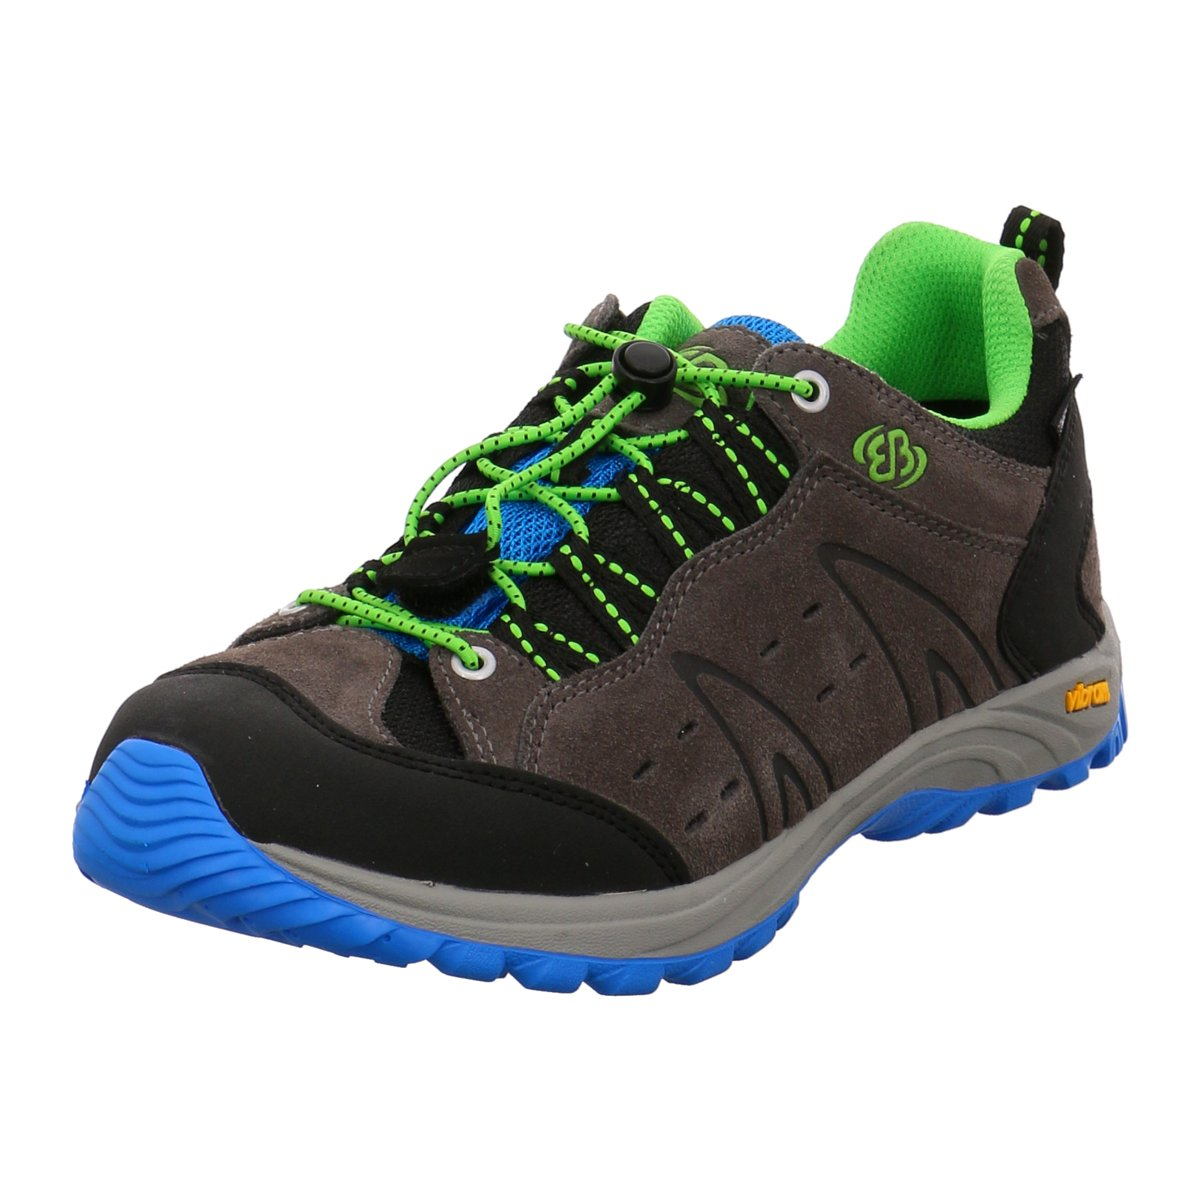 Brütting Kinder Bergschuhe MT.Bona Low K. 421041 grau 149845